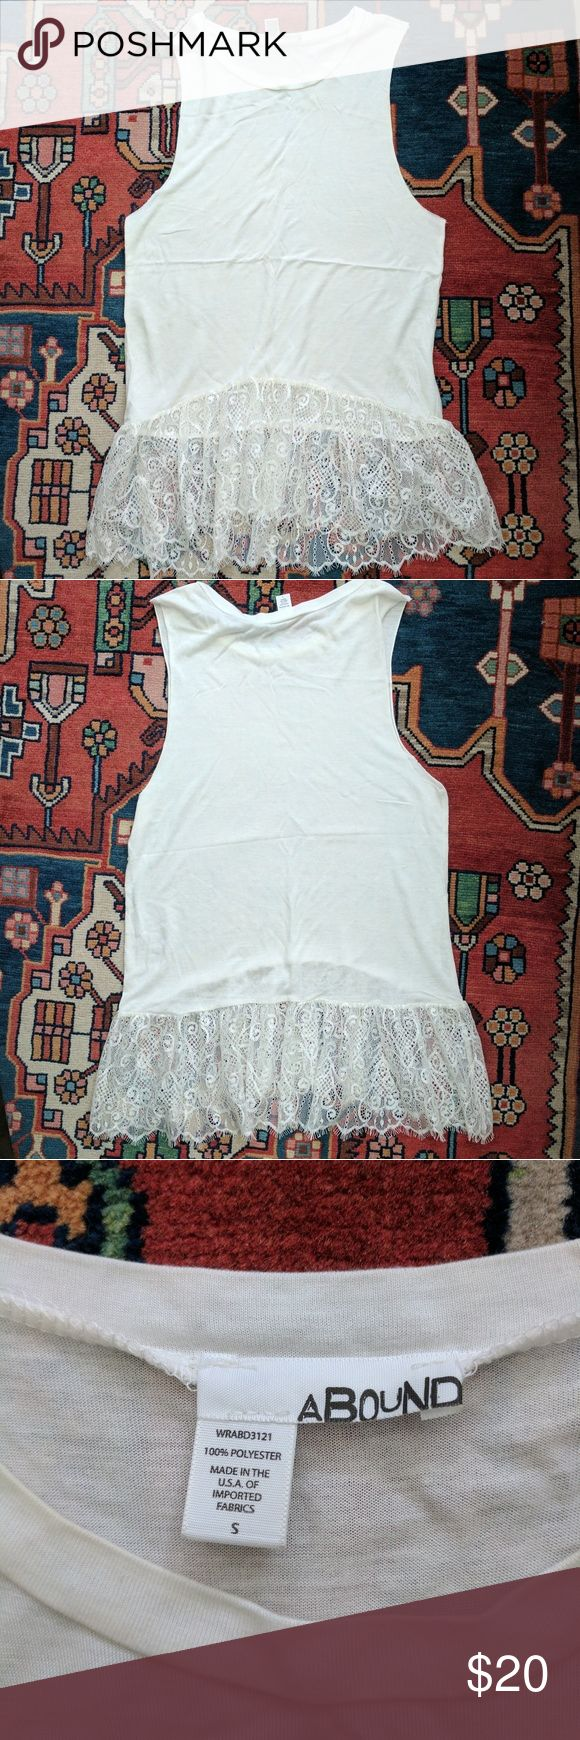 White lace tank top This Nordstrom top has cutoff style sleeves making it an edgy muscle tee but also has the lace bottom making it more feminine. So cute hardly worn no stains! Abound Tops